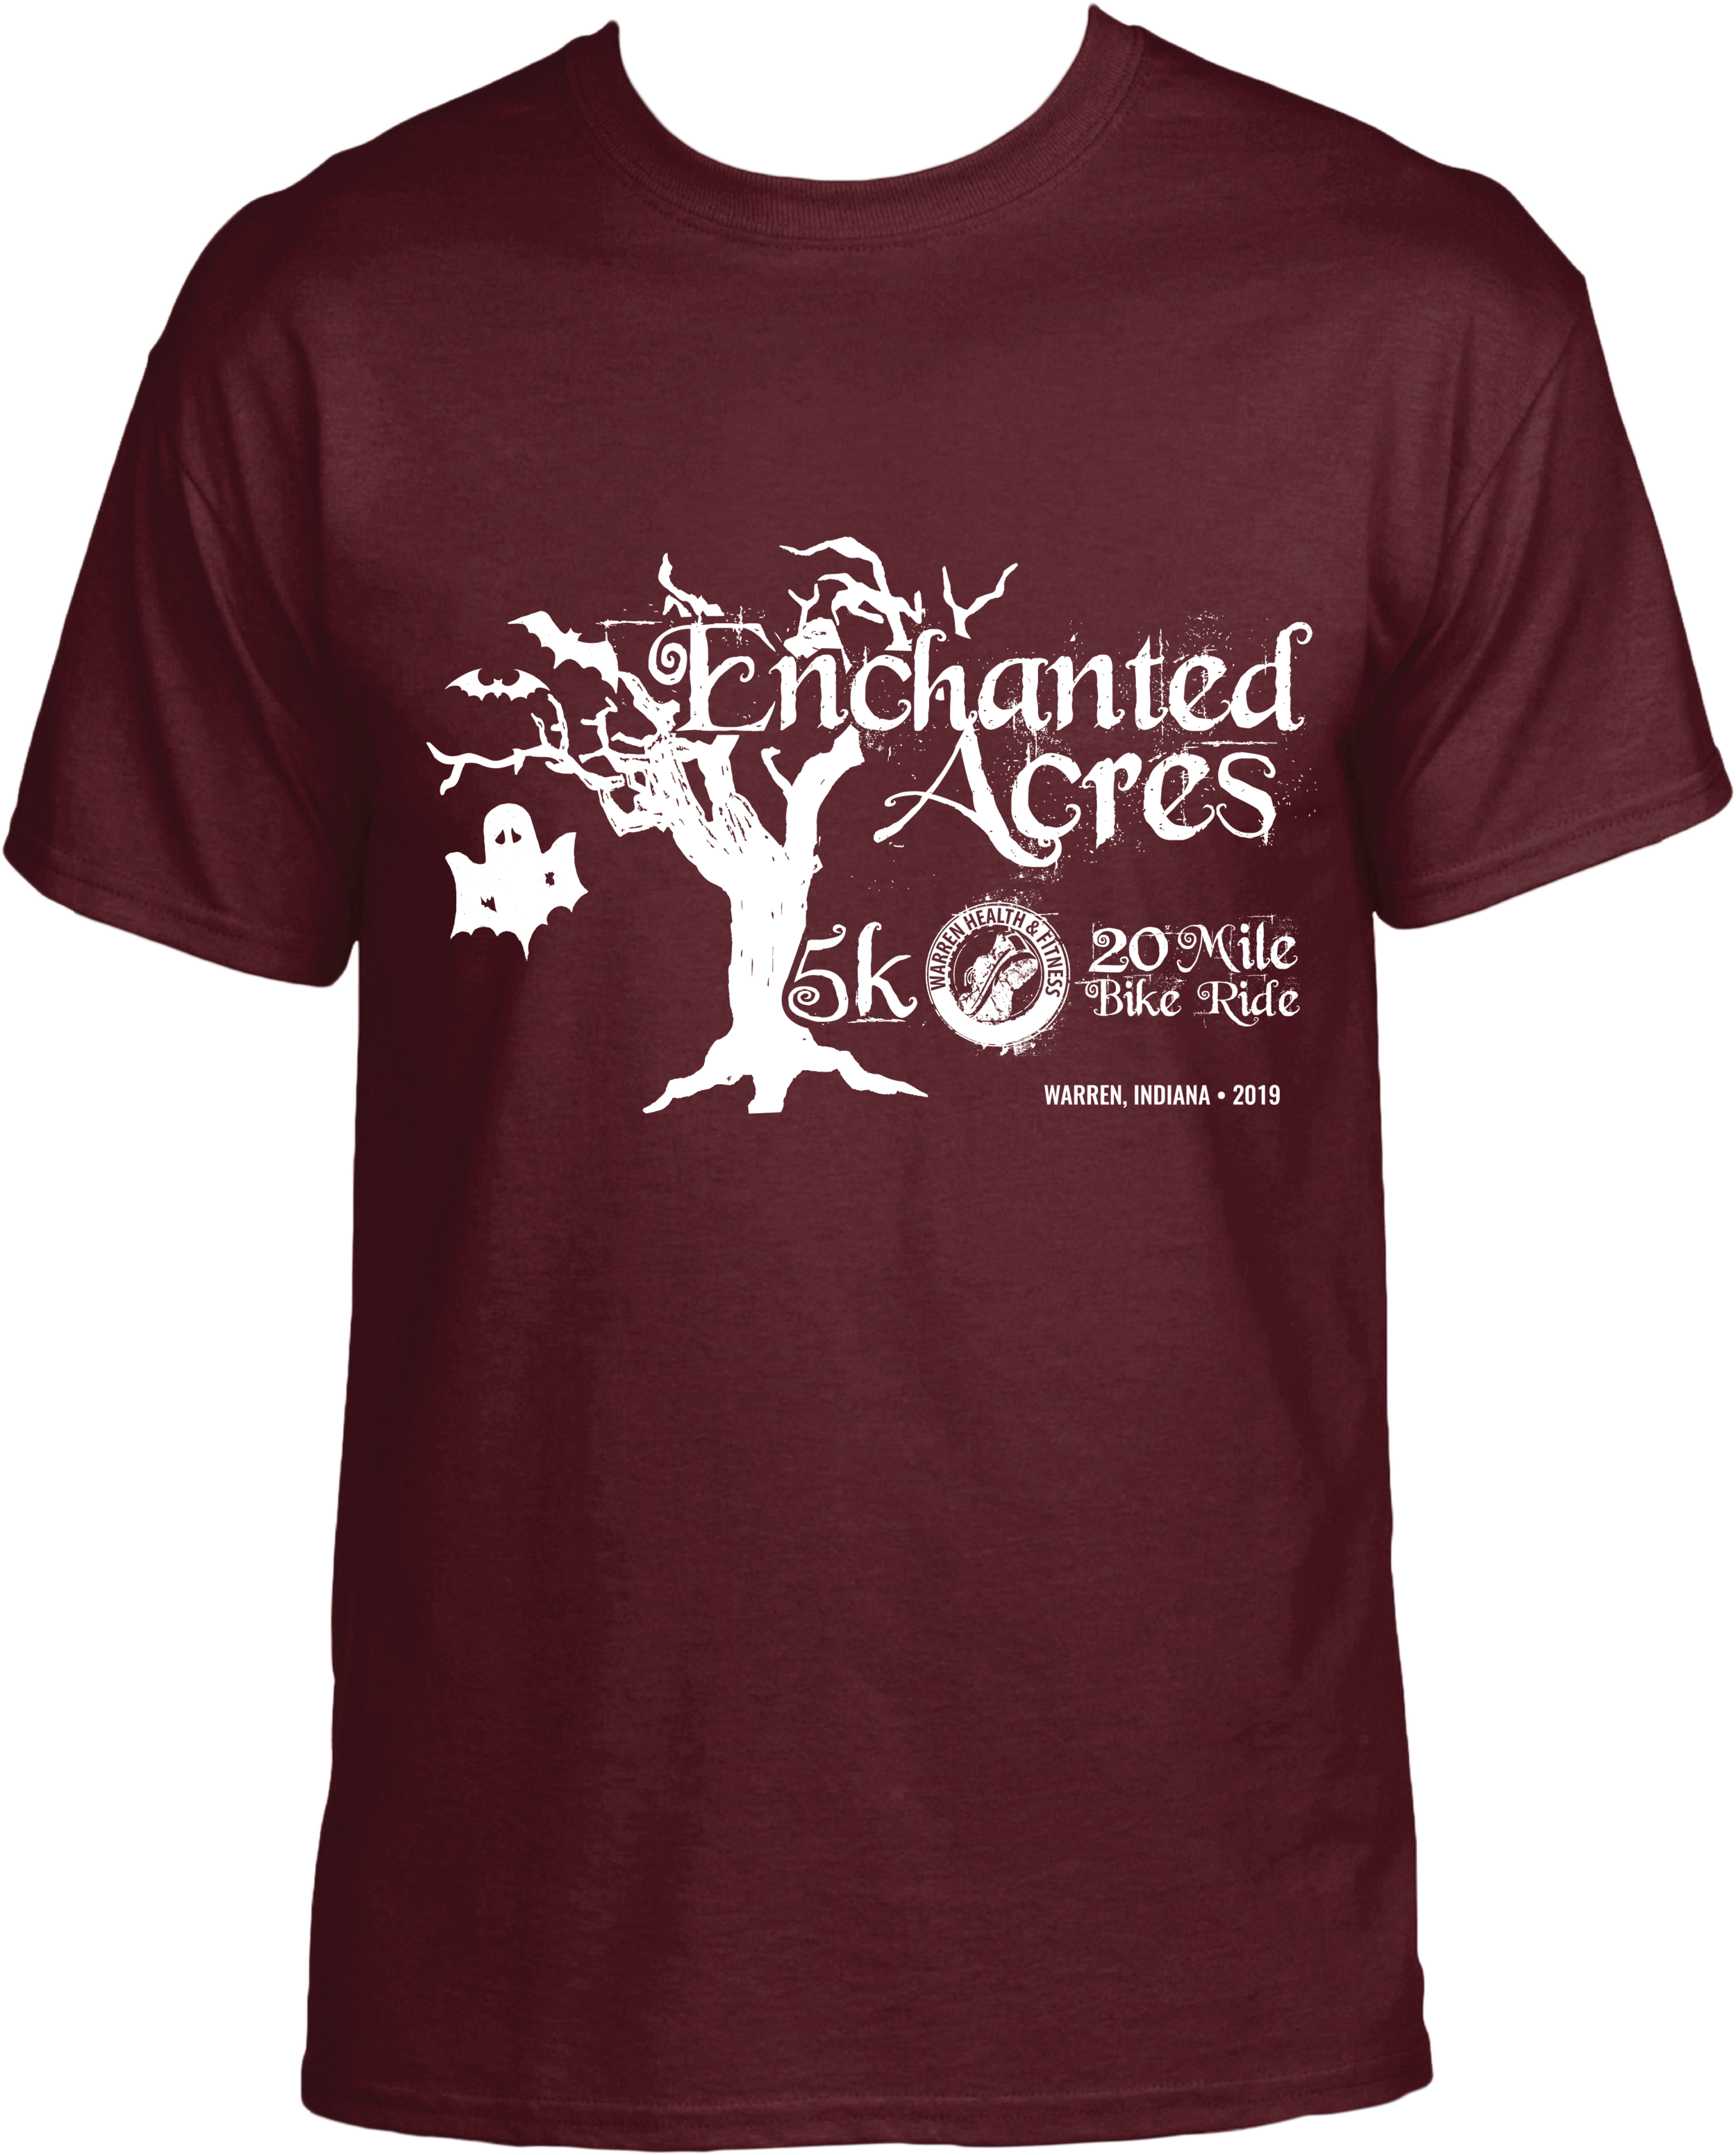 ENCHANTED-ACRES-TSHIRT-2019.png